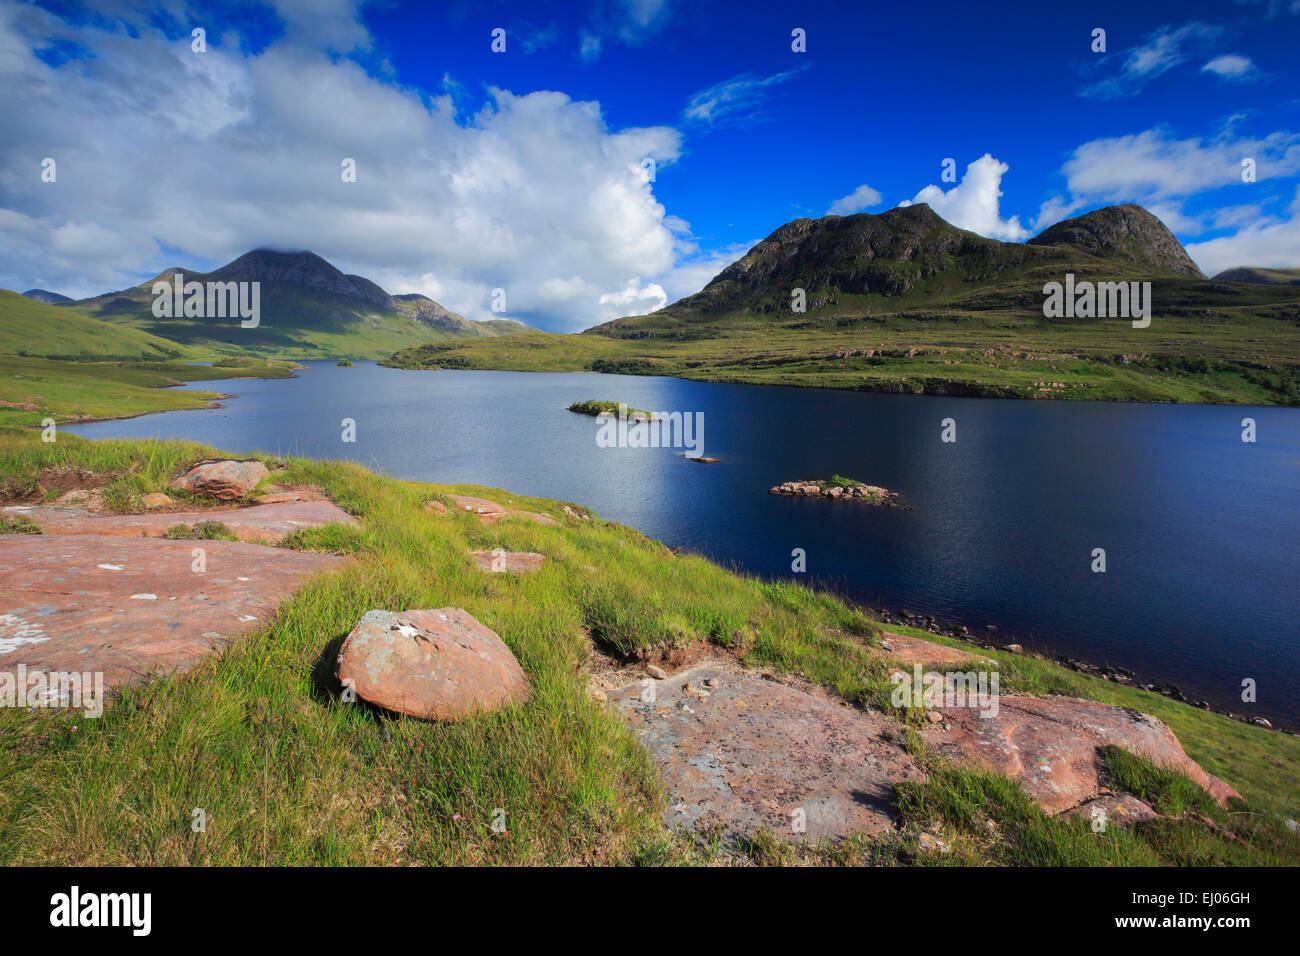 View, mountain, mountains, mountains, water, summits, peaks, Great Britain, Highland, highlands, sky, highland, - Stock Image